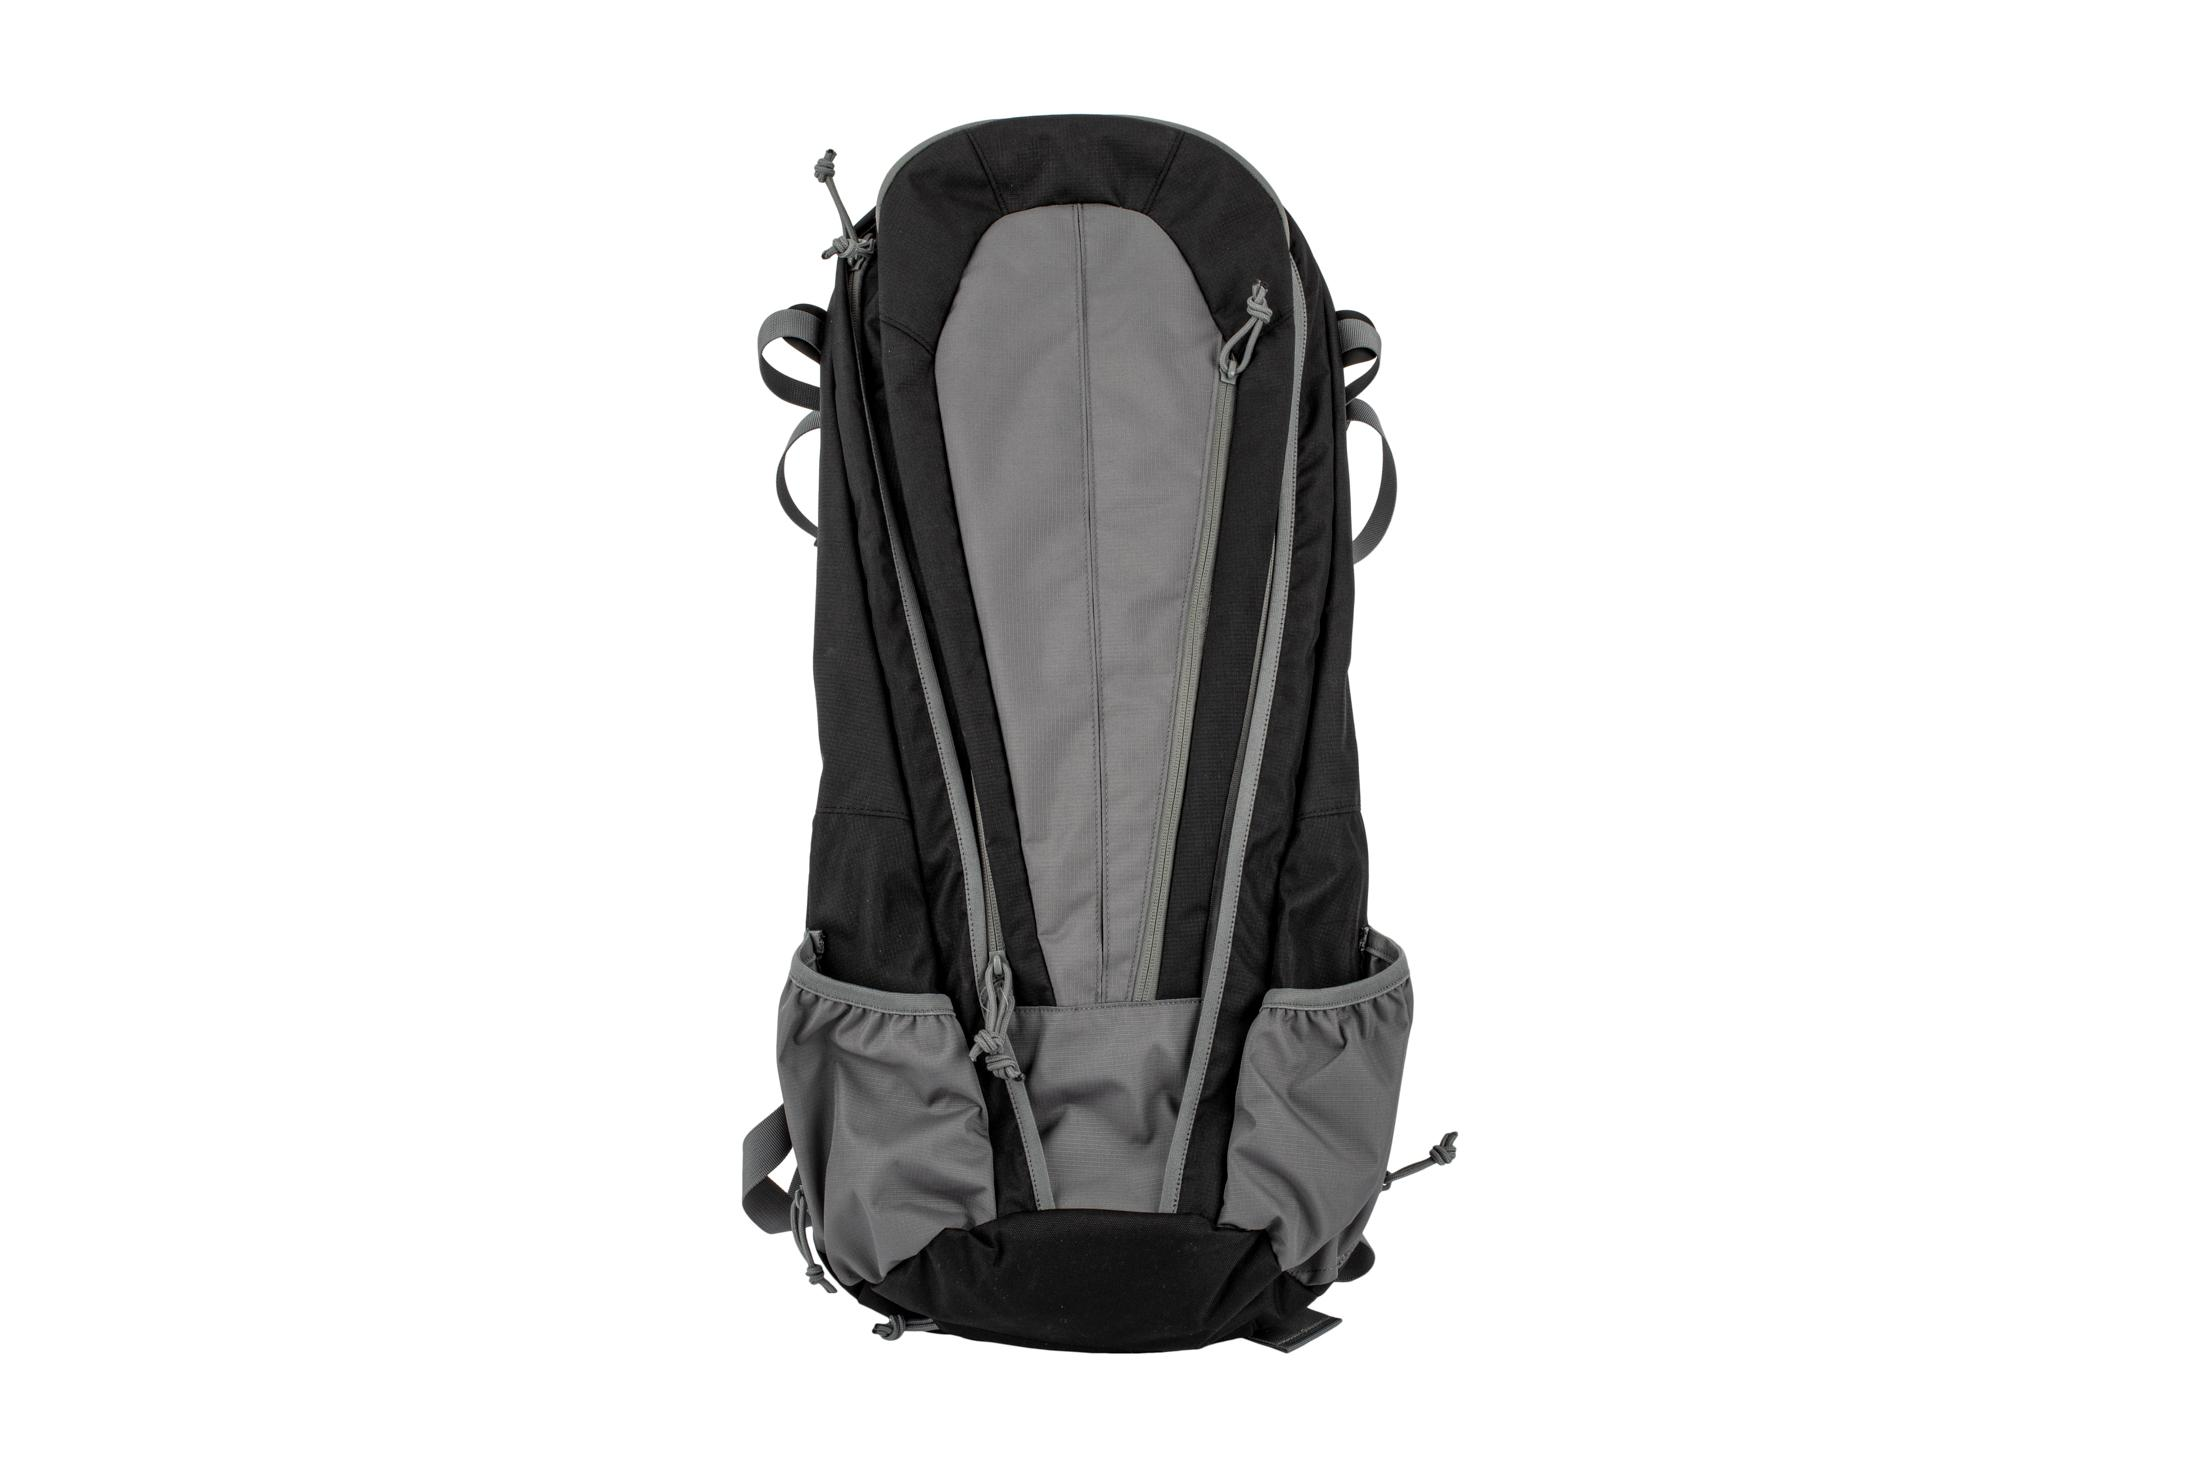 The Grey Ghost Gear Apparition SBR Bag features a grey and black color and made from durable material